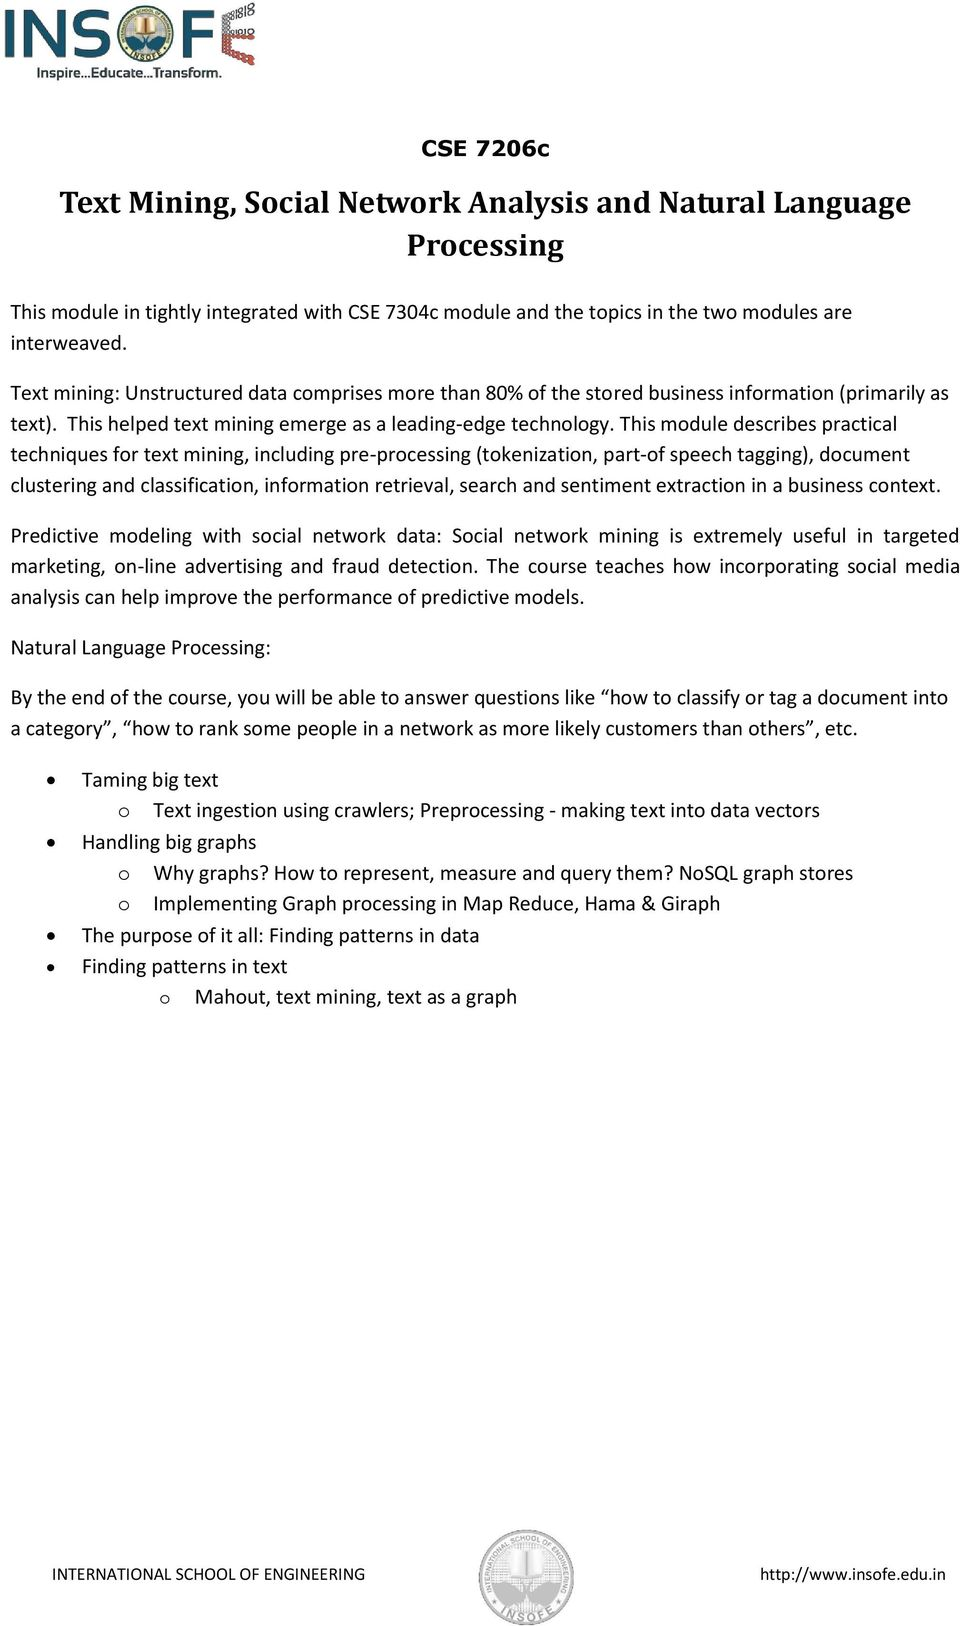 This module describes practical techniques for text mining, including pre-processing (tokenization, part-of speech tagging), document clustering and classification, information retrieval, search and